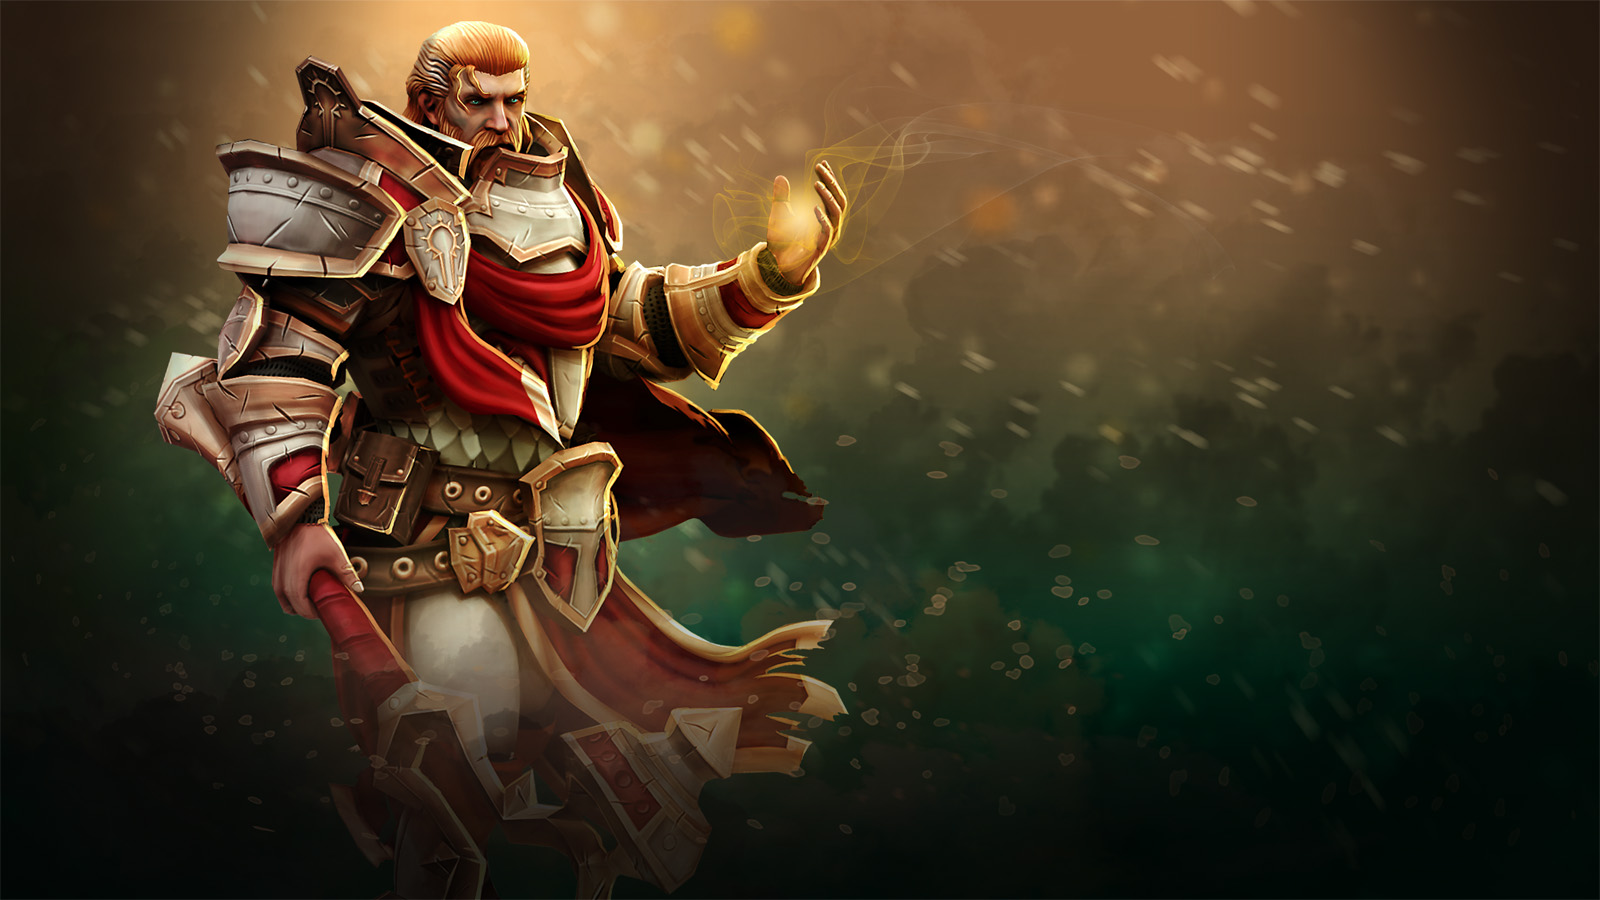 Omniknikht dota2 walpepers download free Омникнайт